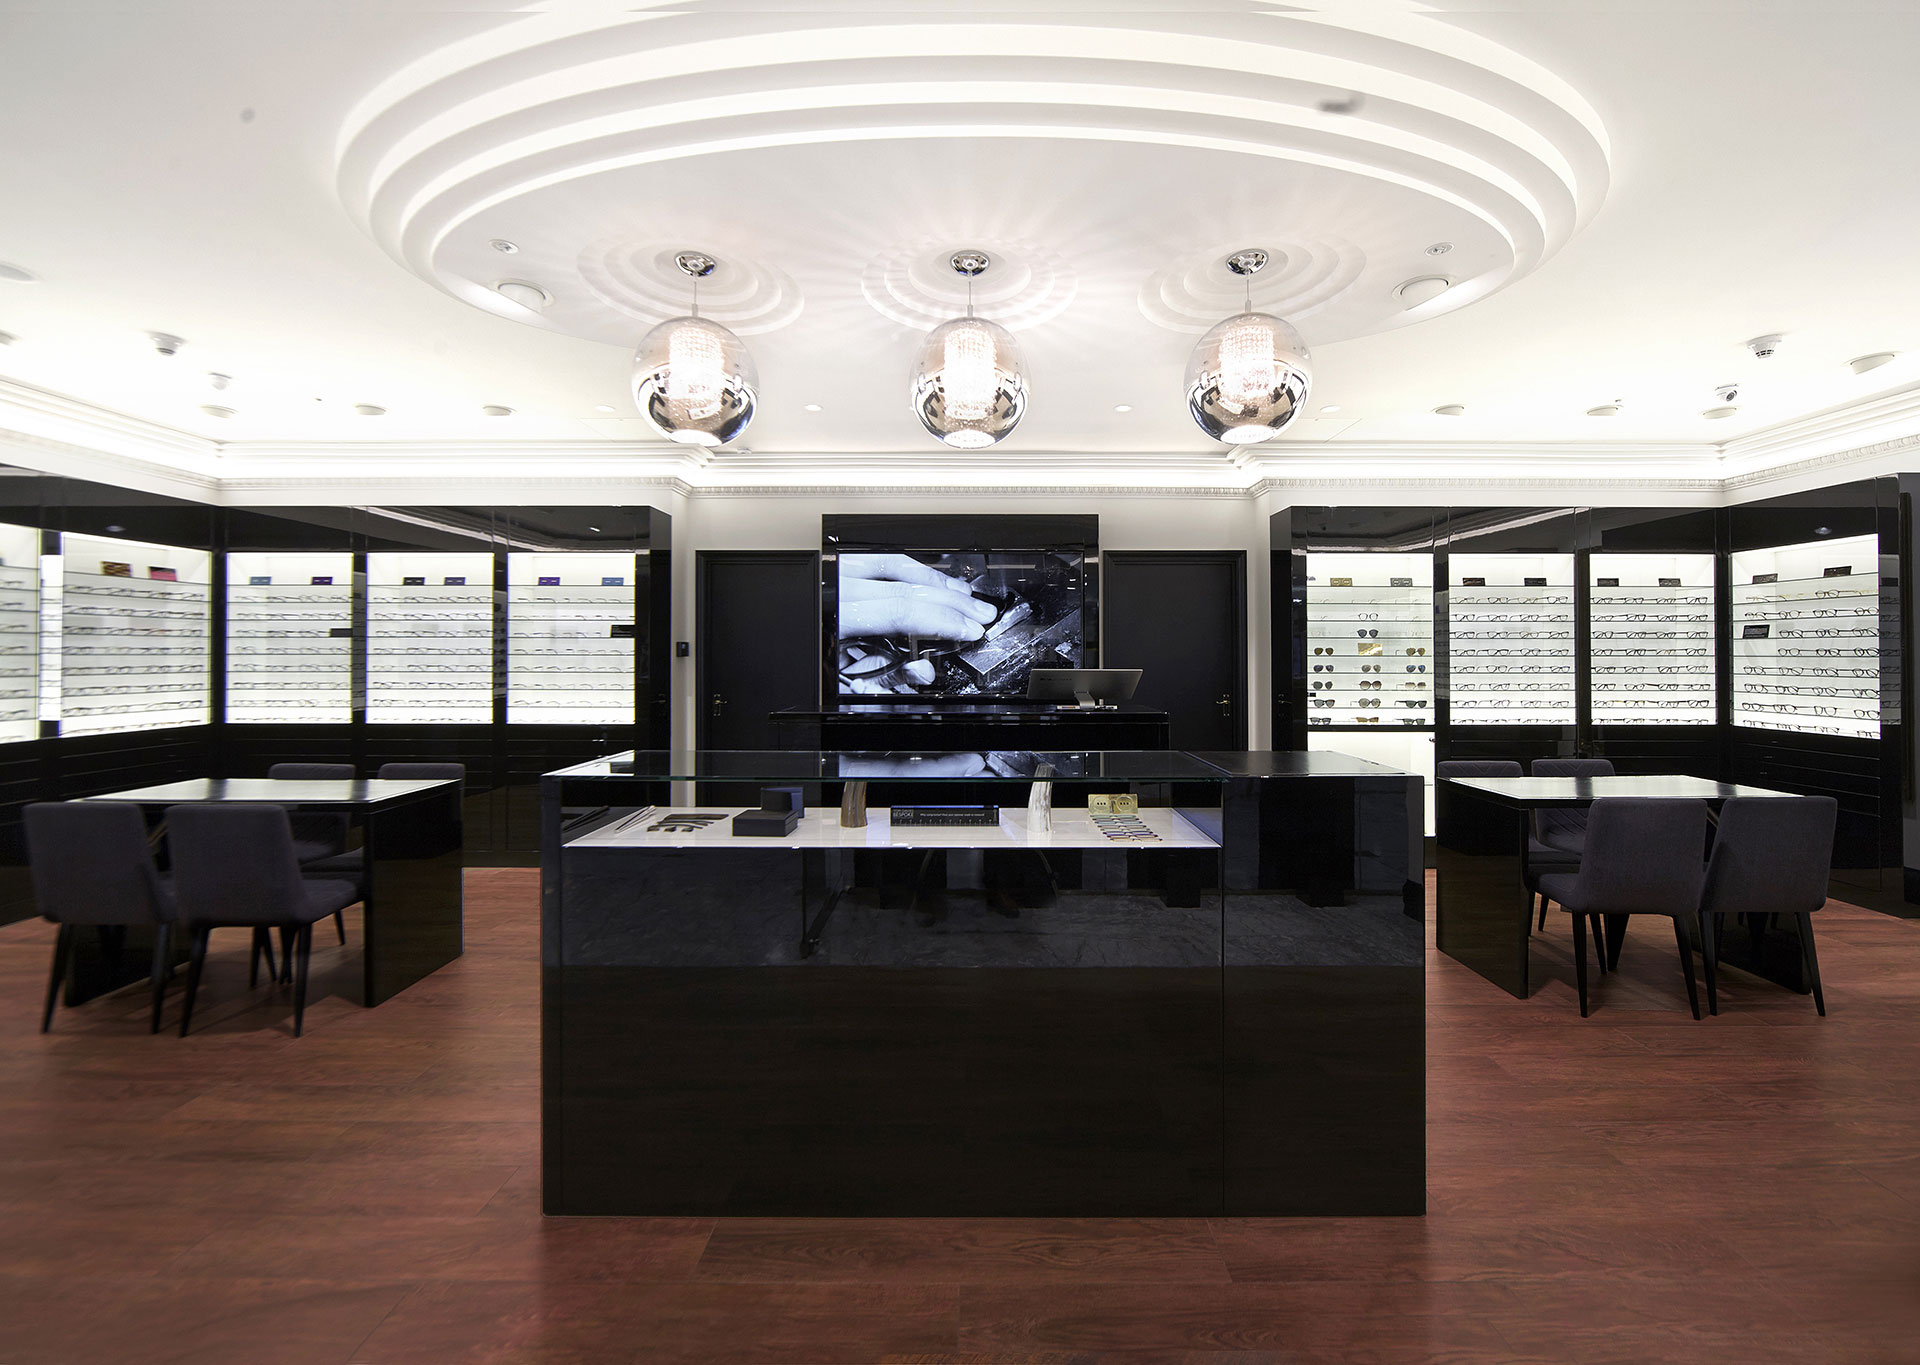 Shop floor of Tom Davies Bespoke Opticians in Canary Wharf